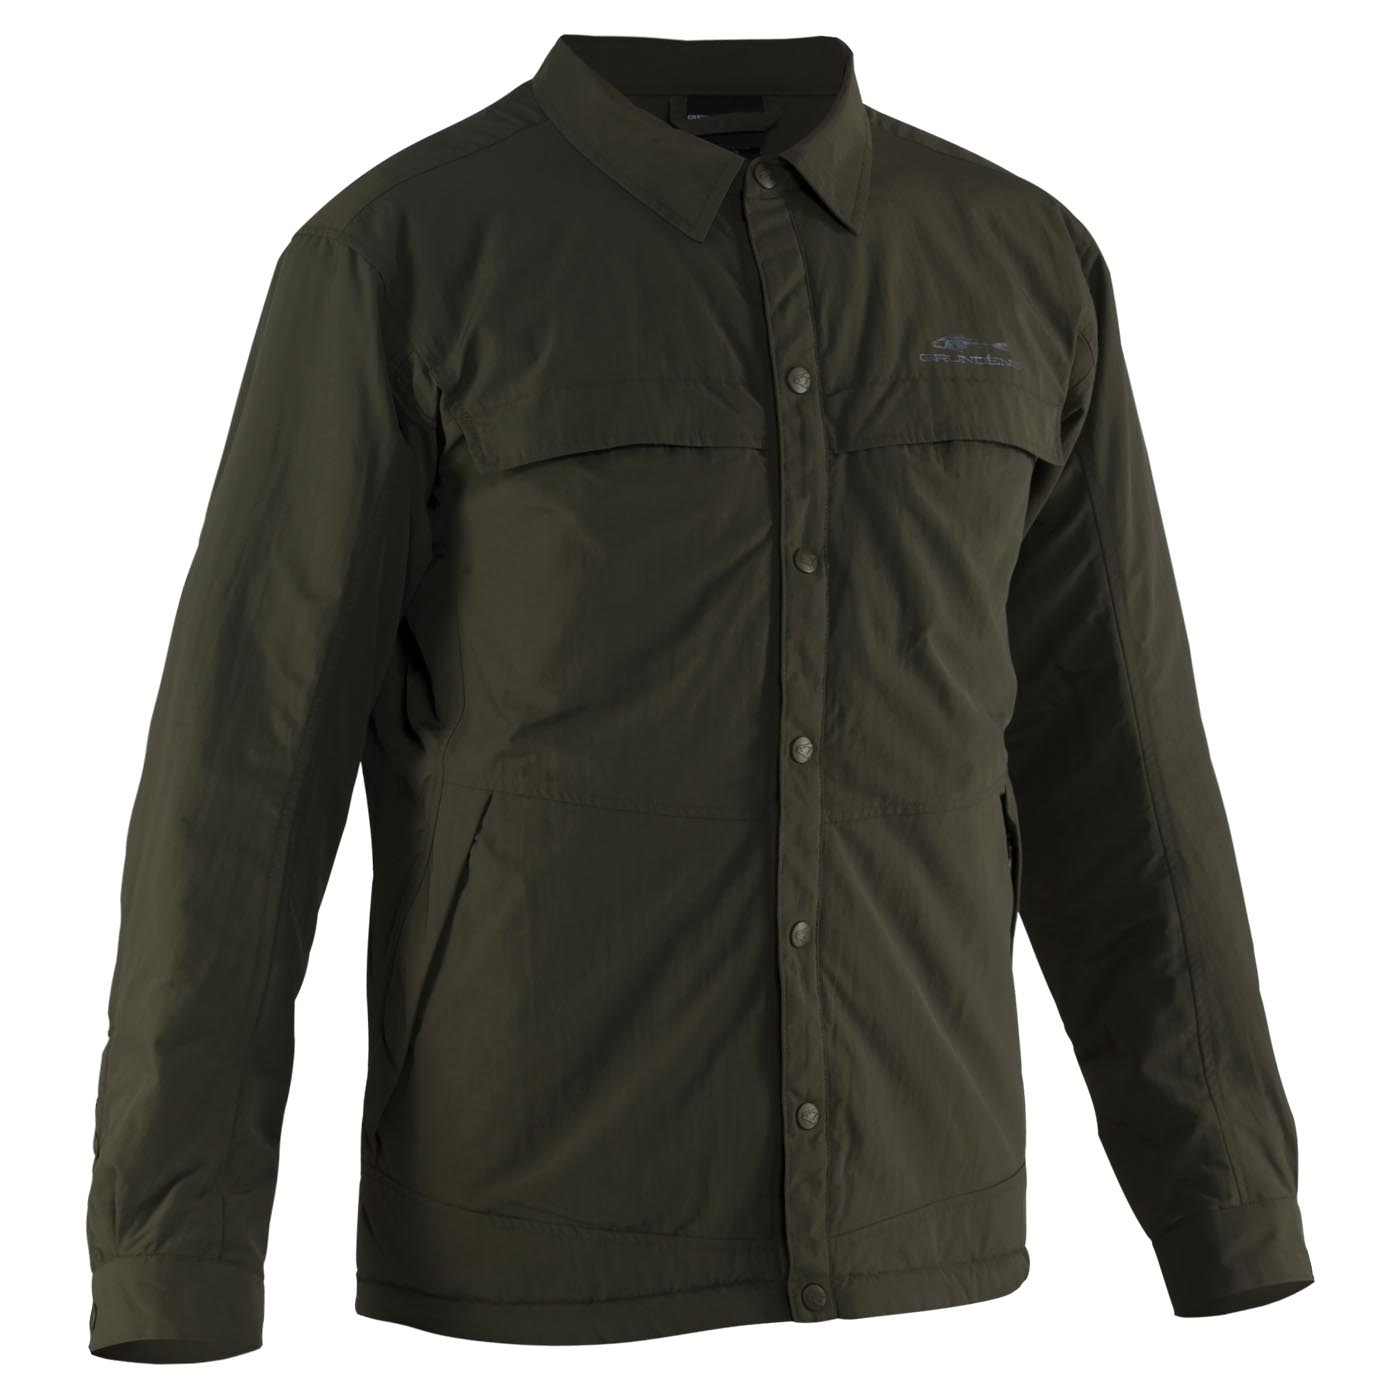 Dawn Patrol Jacket Olive Front View